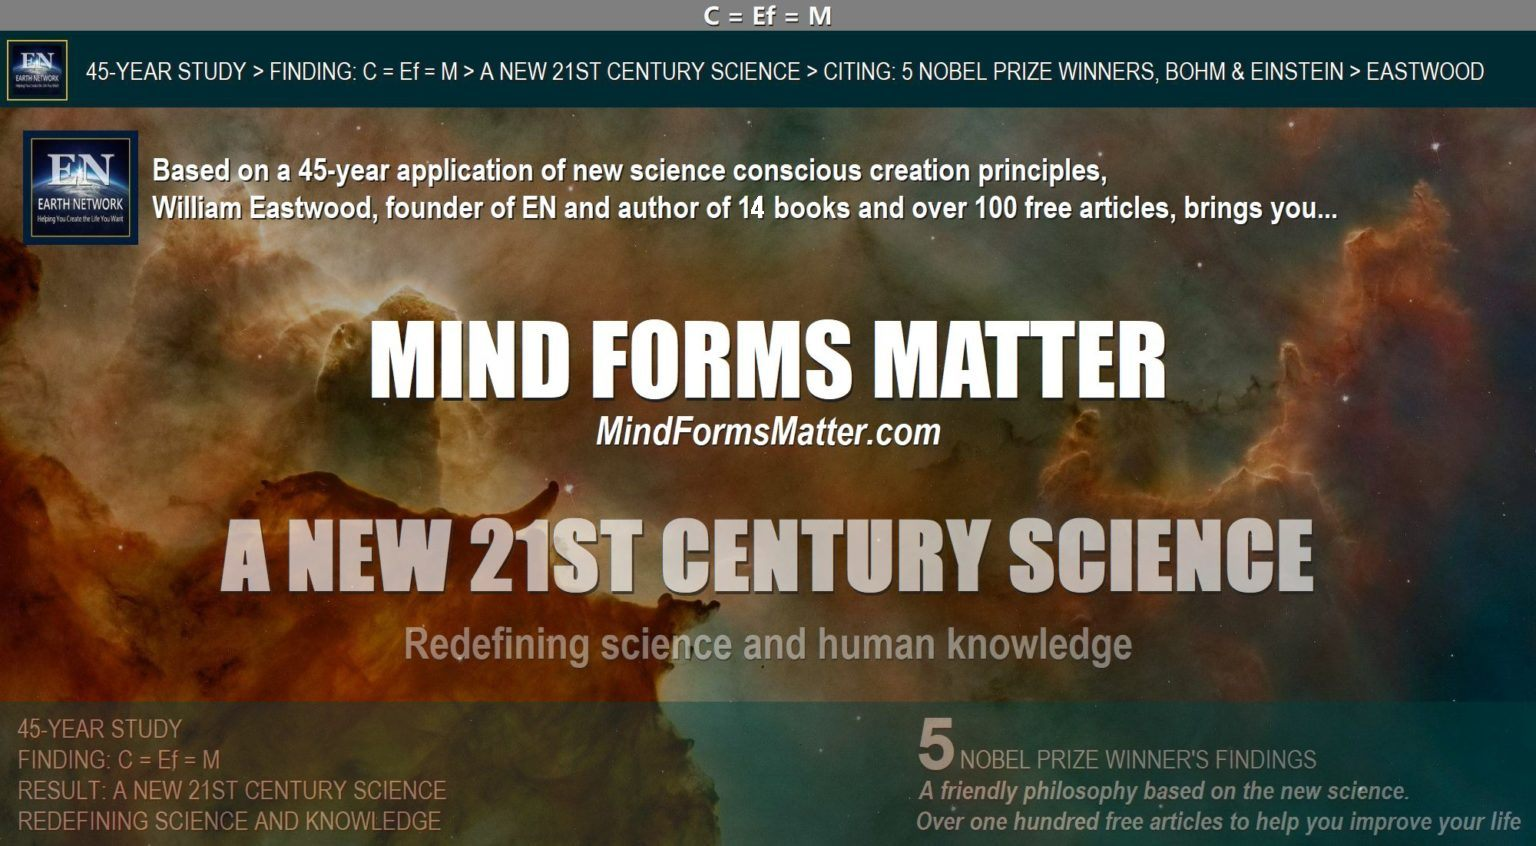 Mind forms matter brings you a new science in which it is known that mind can and does create matter and reality. Five Nobel Prize winners confirm. Your thoughts create your reality.